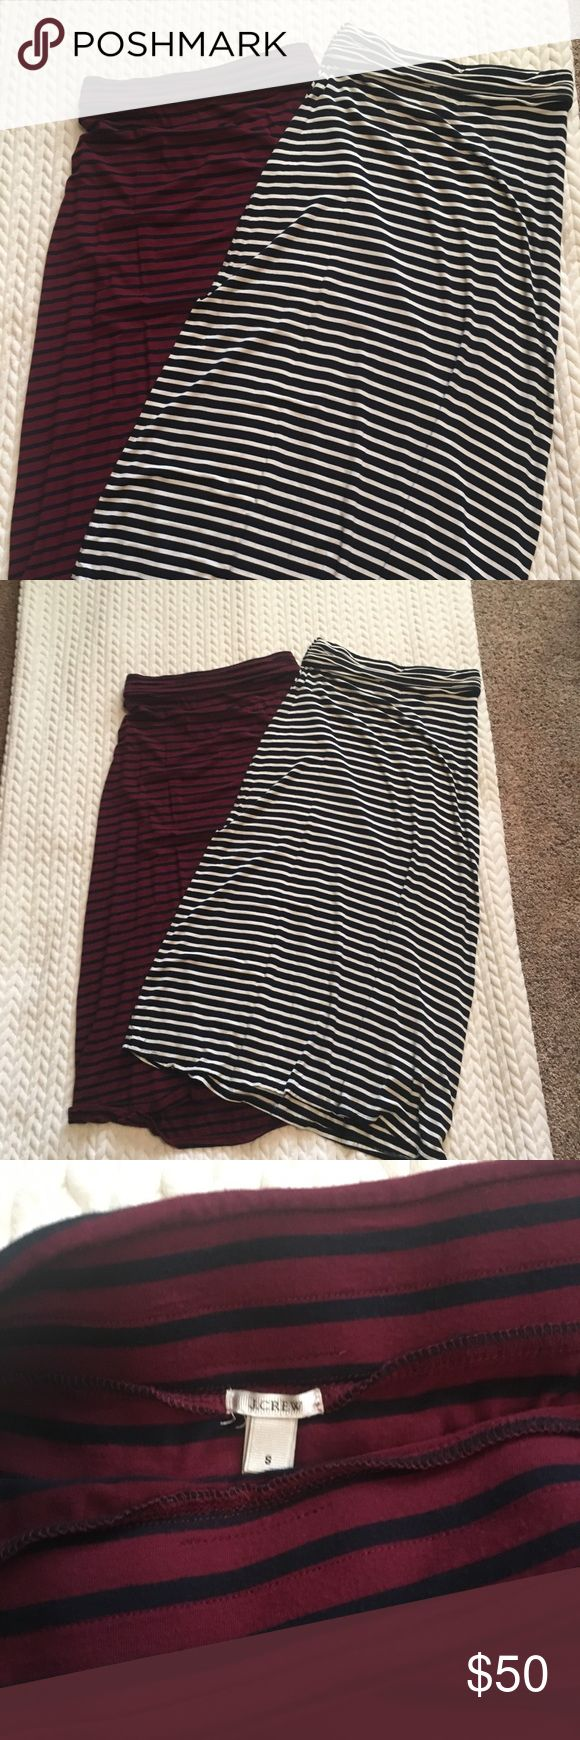 J Crew Full Length Maxi Skirts Gorgeous Striped Skirts for sale!!! Super comfortable soft fabric with elastic waistband. Navy/White & Auburn/Navy J Crew Skirts Maxi